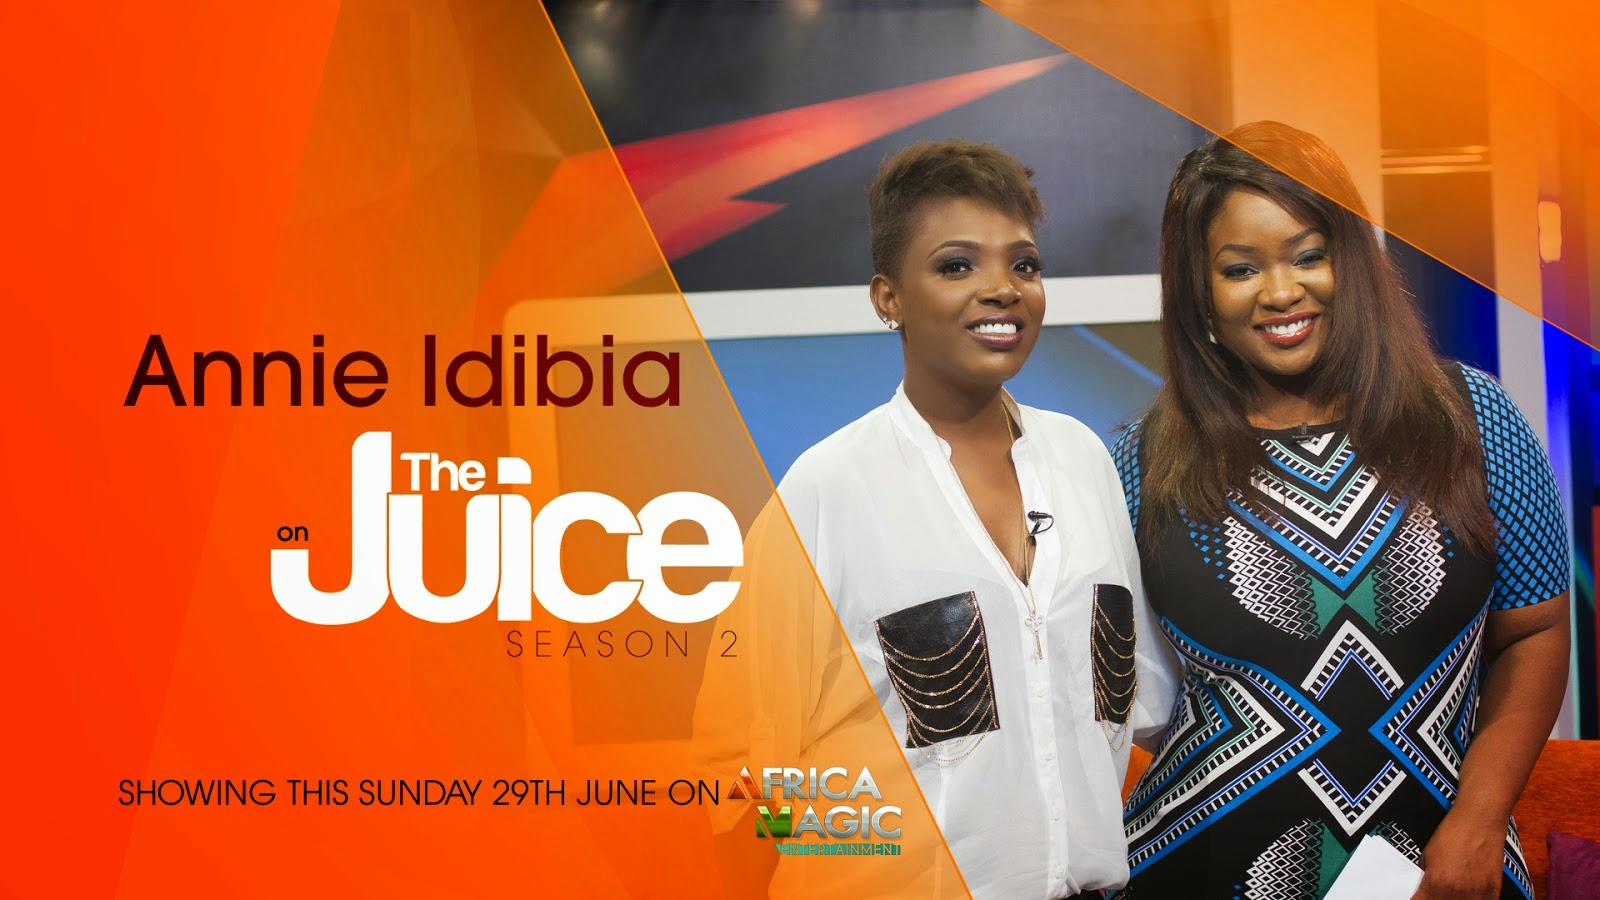 annie idibia the juice